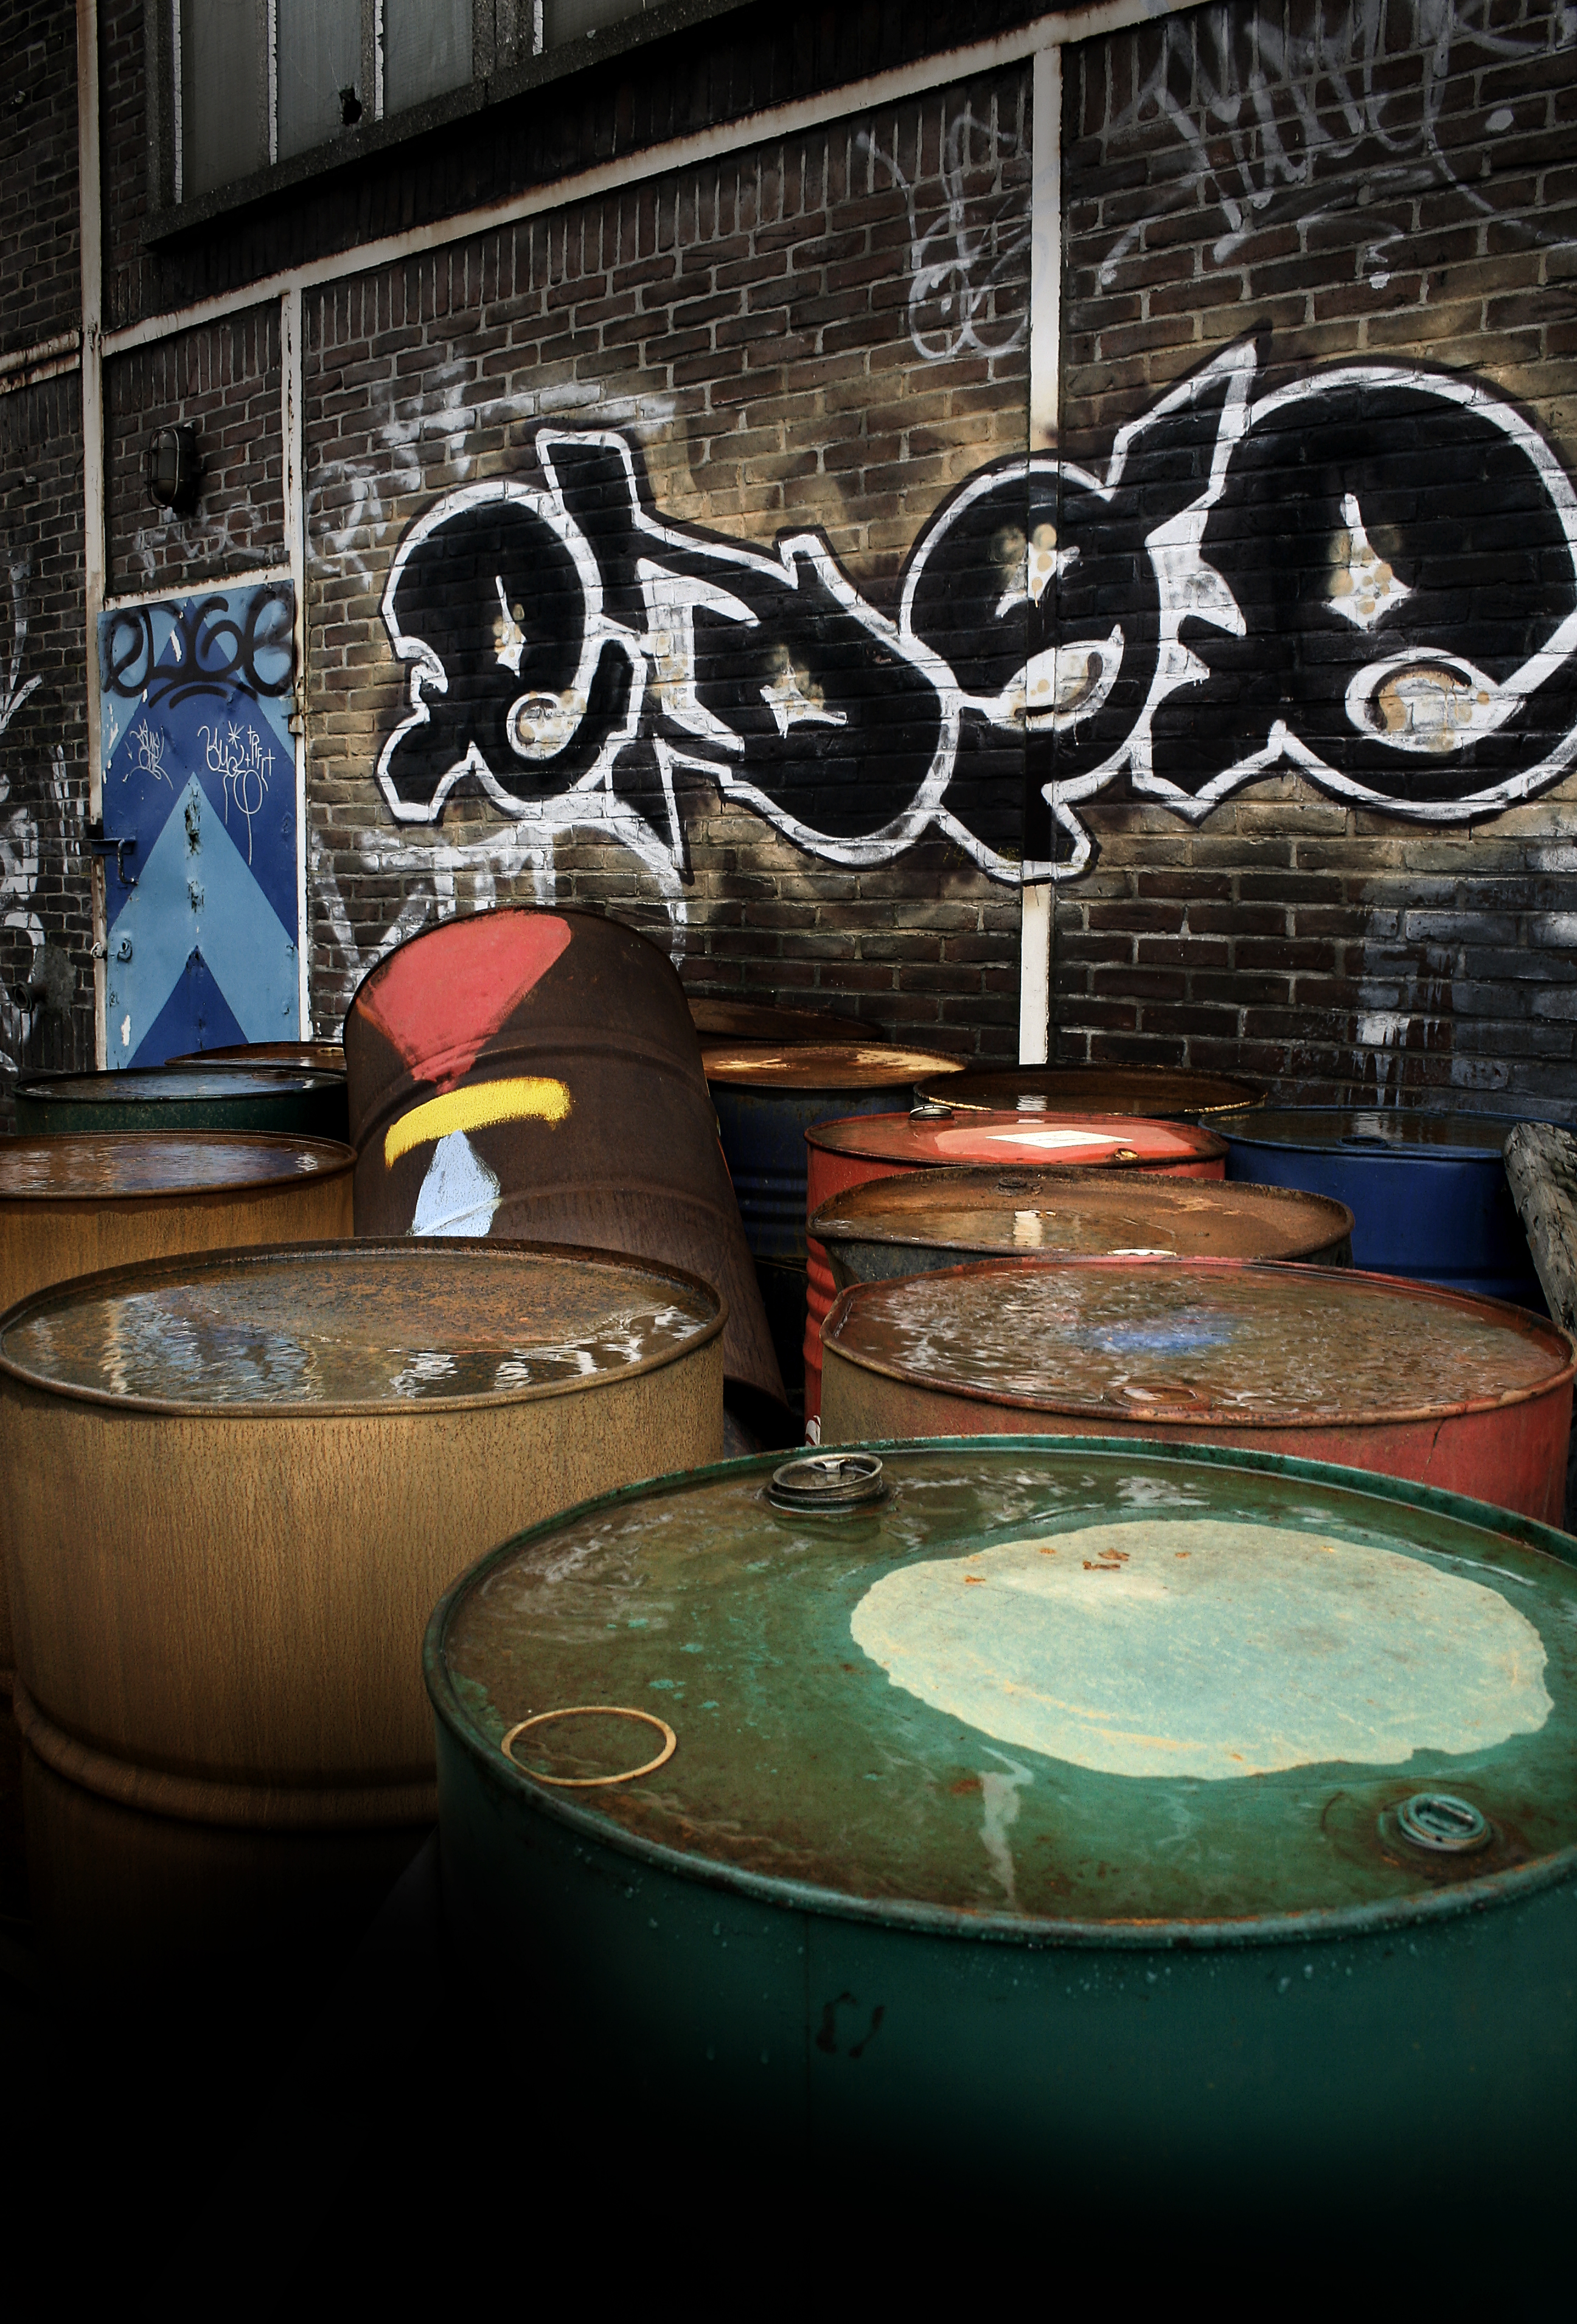 Urban oil cans/drums photo